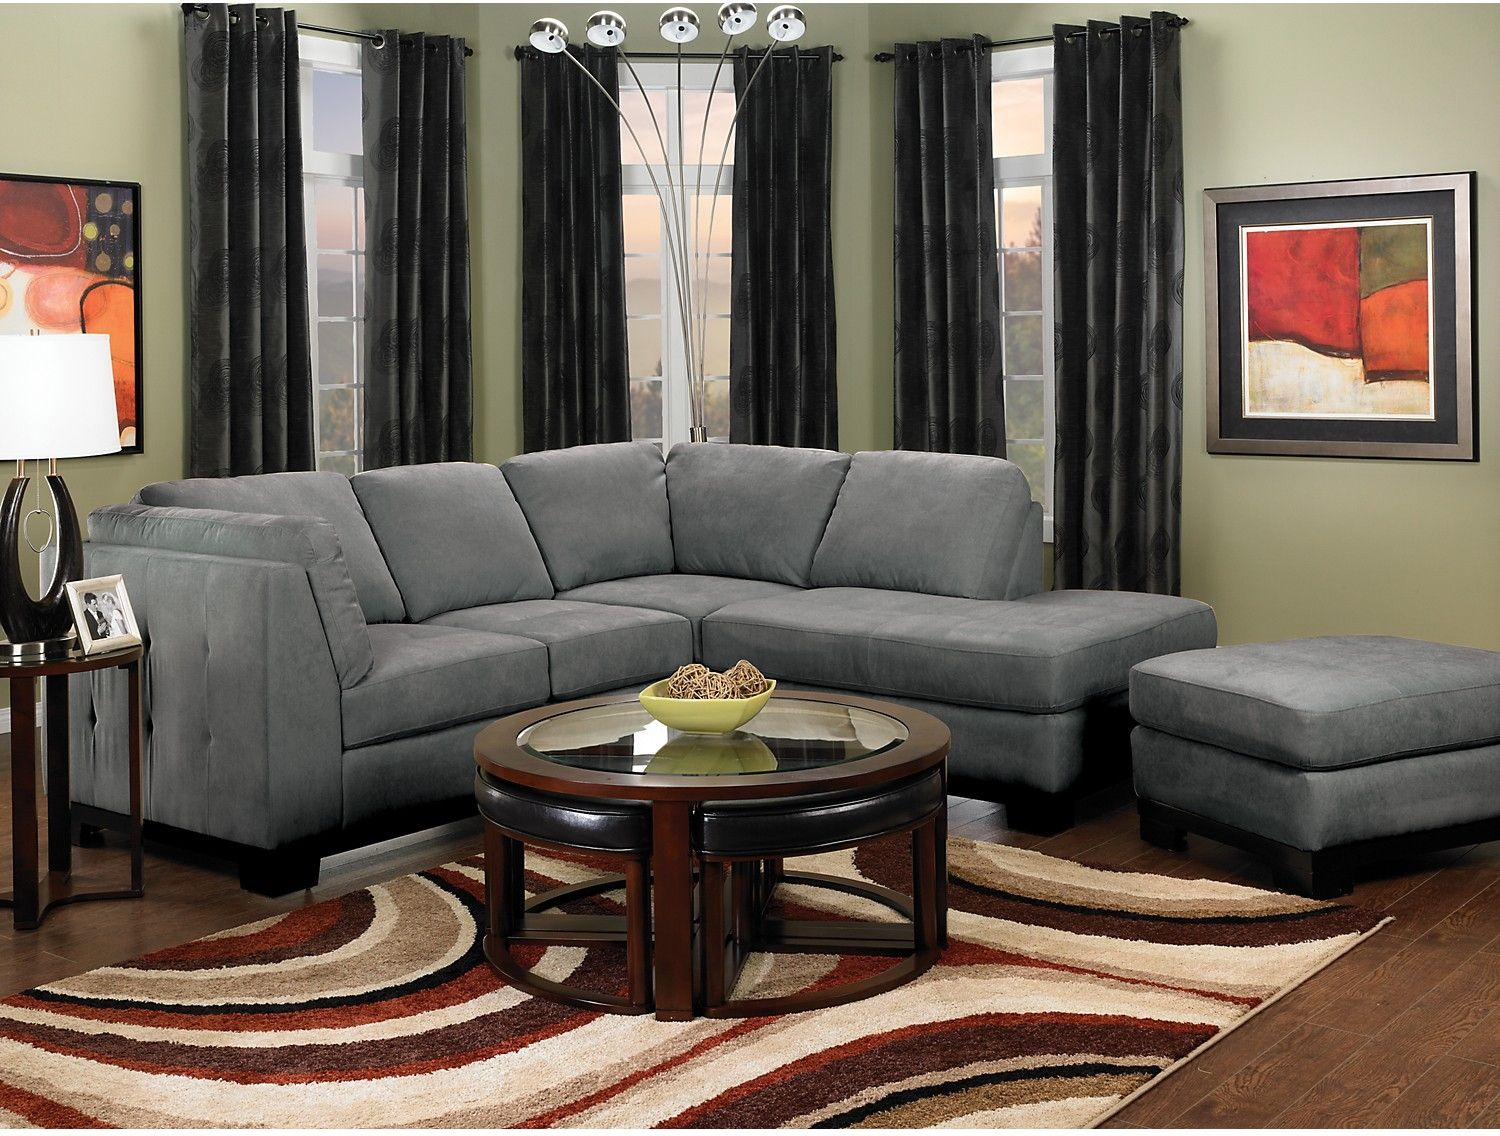 Oakdale 2-Piece Microsuede Sectional w/Right-Facing Chaise - Grey | The : micro suede sectional - Sectionals, Sofas & Couches